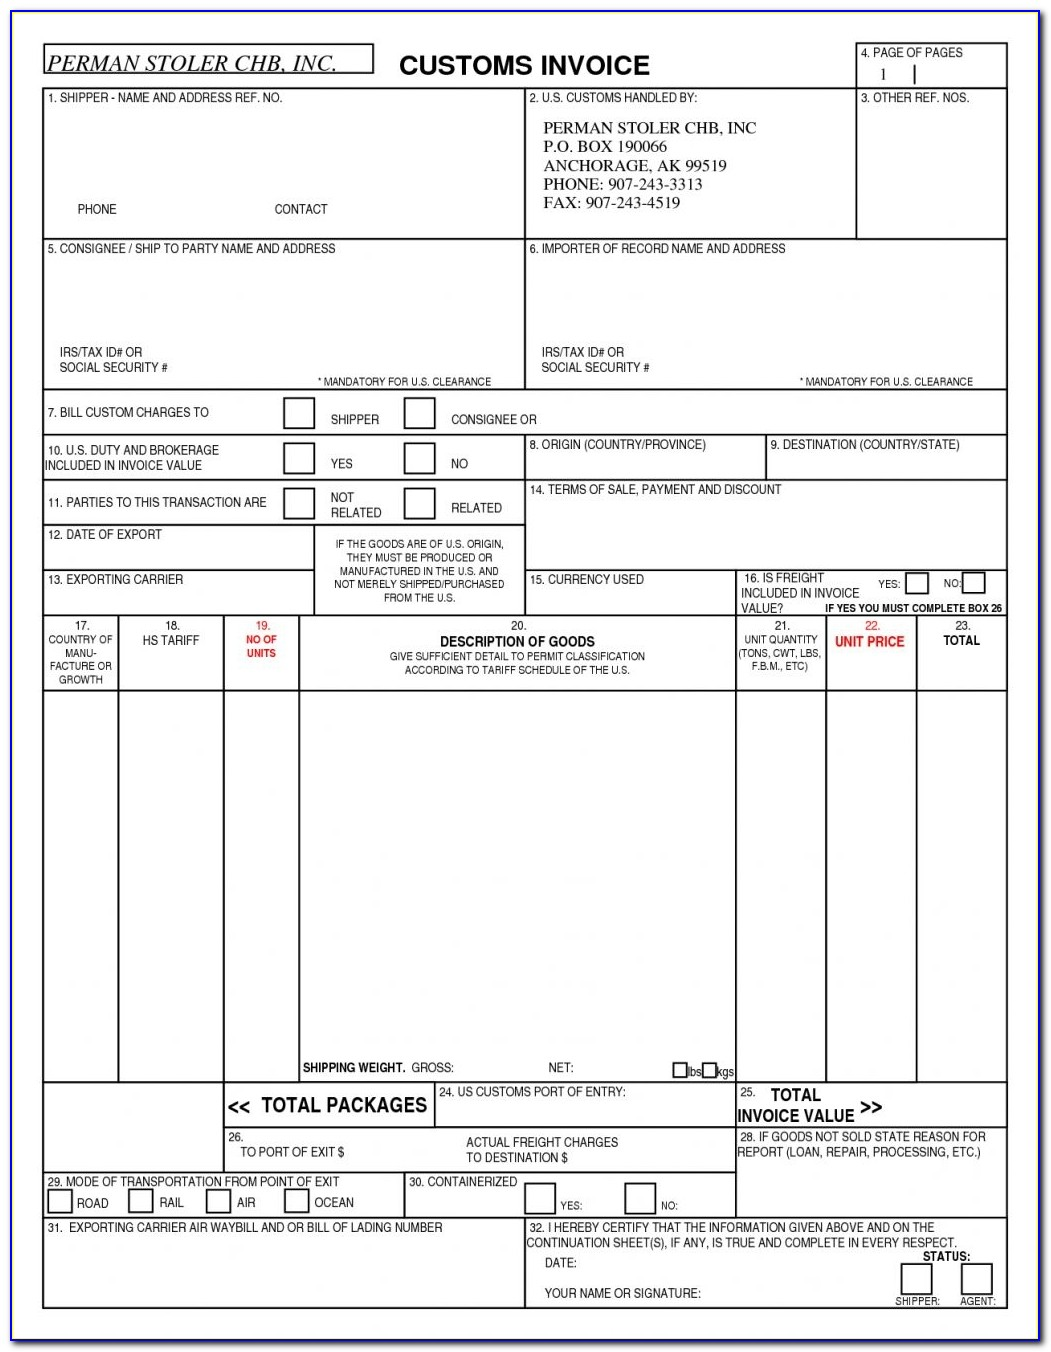 Customs Invoice Template Invoicegenerator Us Customs Invoice Form